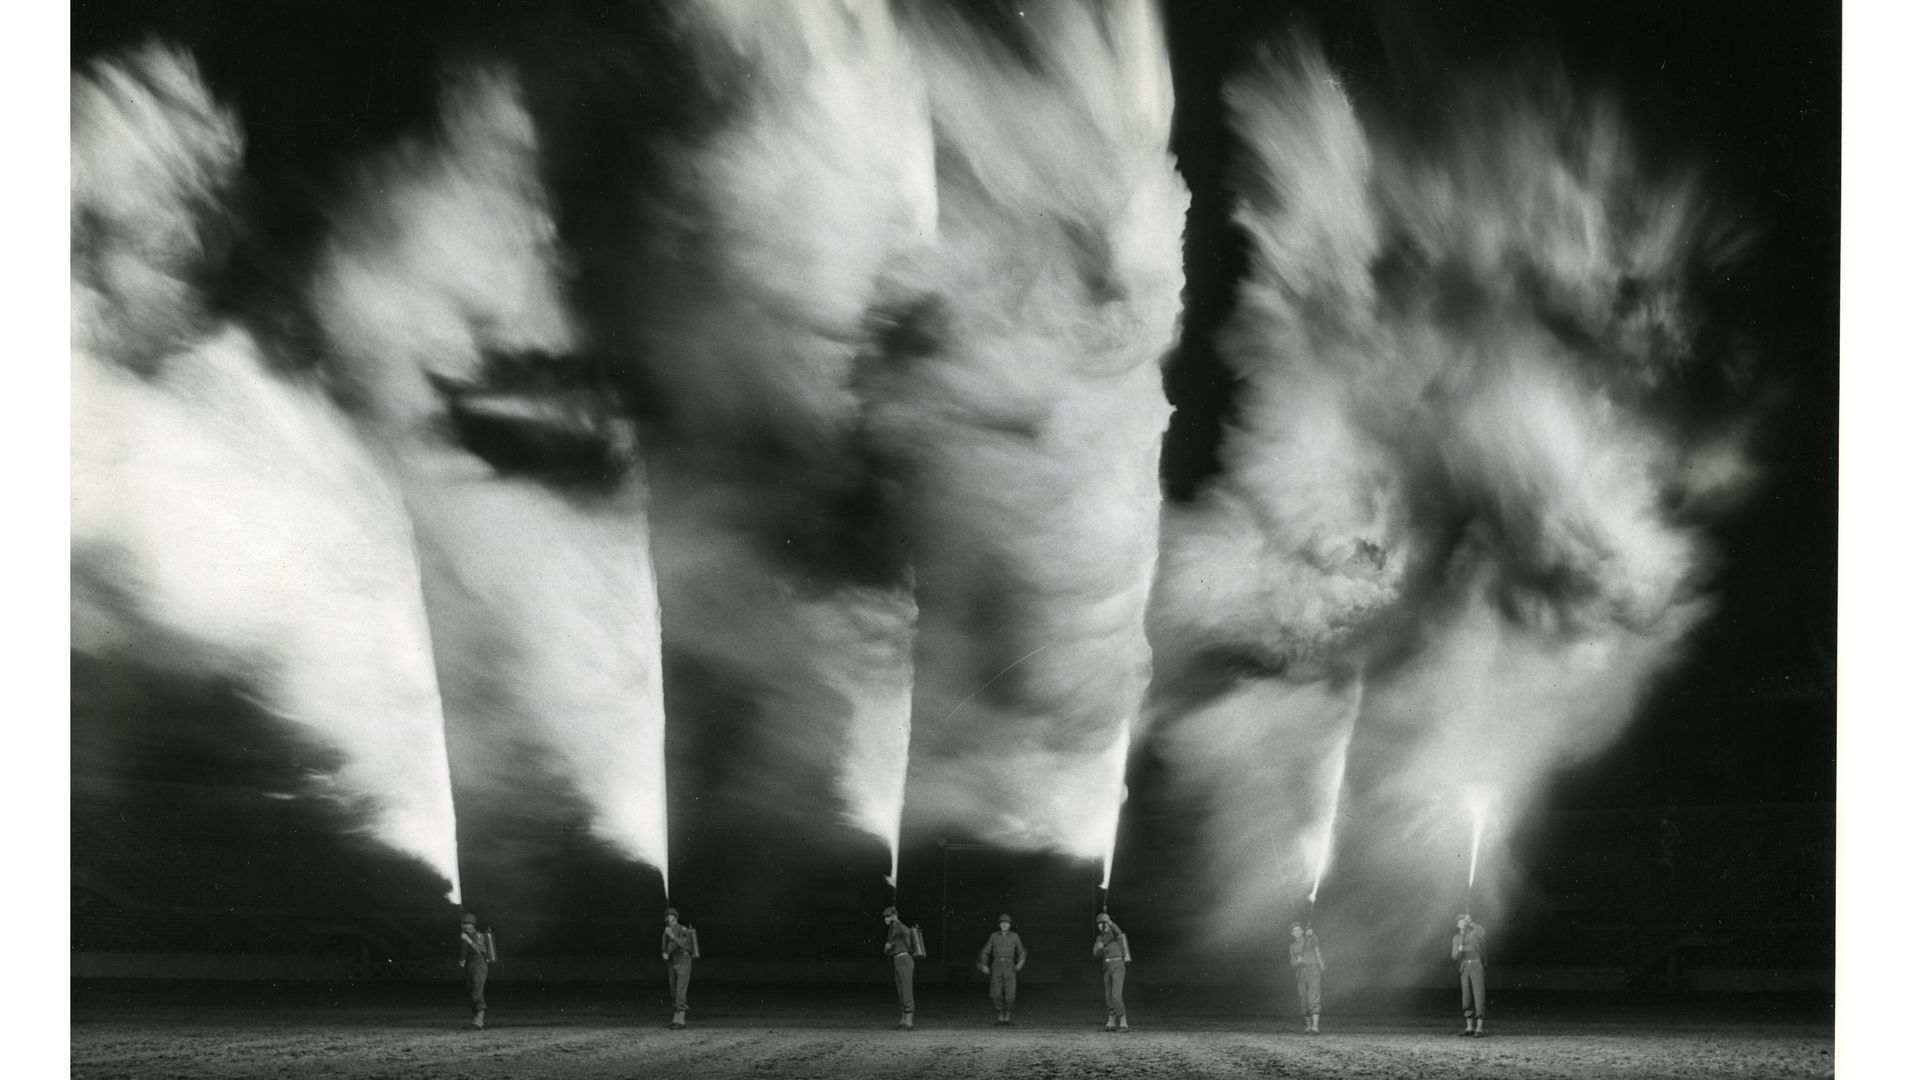 Flammekastere vises fram under et show 27. november 1942 i New Orleans, Louisiana i USA. Foto: Det amerikanske nationalarkivet.